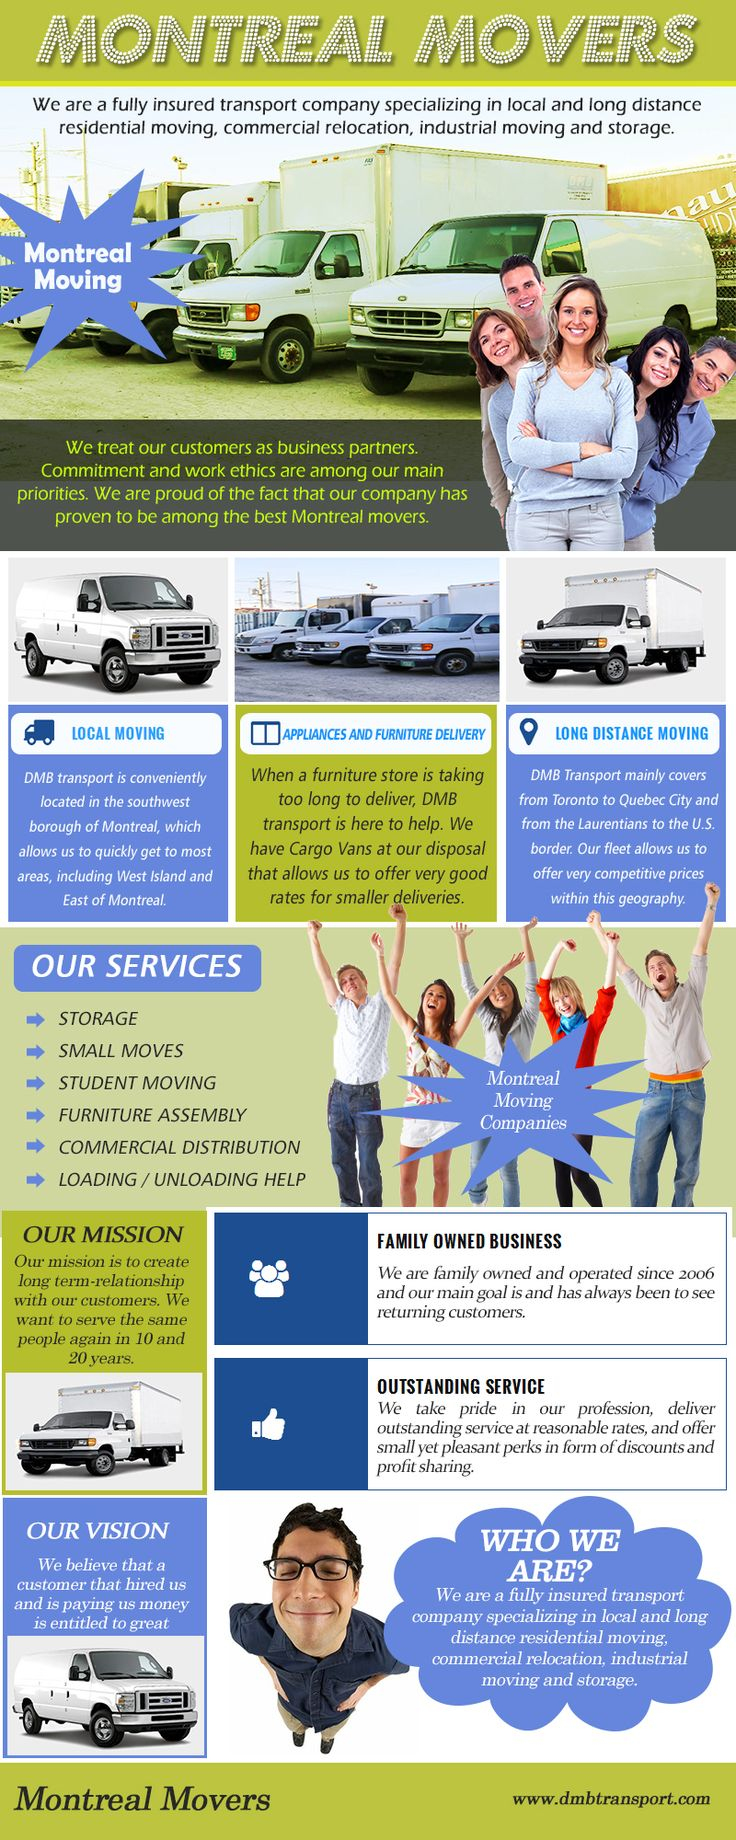 Visit this site https://twitter.com/DMBTransports/ for more information on Montreal movers. Moving is hard work but with the services of professional movers it can be stress-free and a pleasant experience. Montreal movers specialize in their work and thus are experts in the process of relocating. By hiring their services, you can focus on other important aspects and leave the shifting of everything from heavy furniture to delicate show items to the professionals.